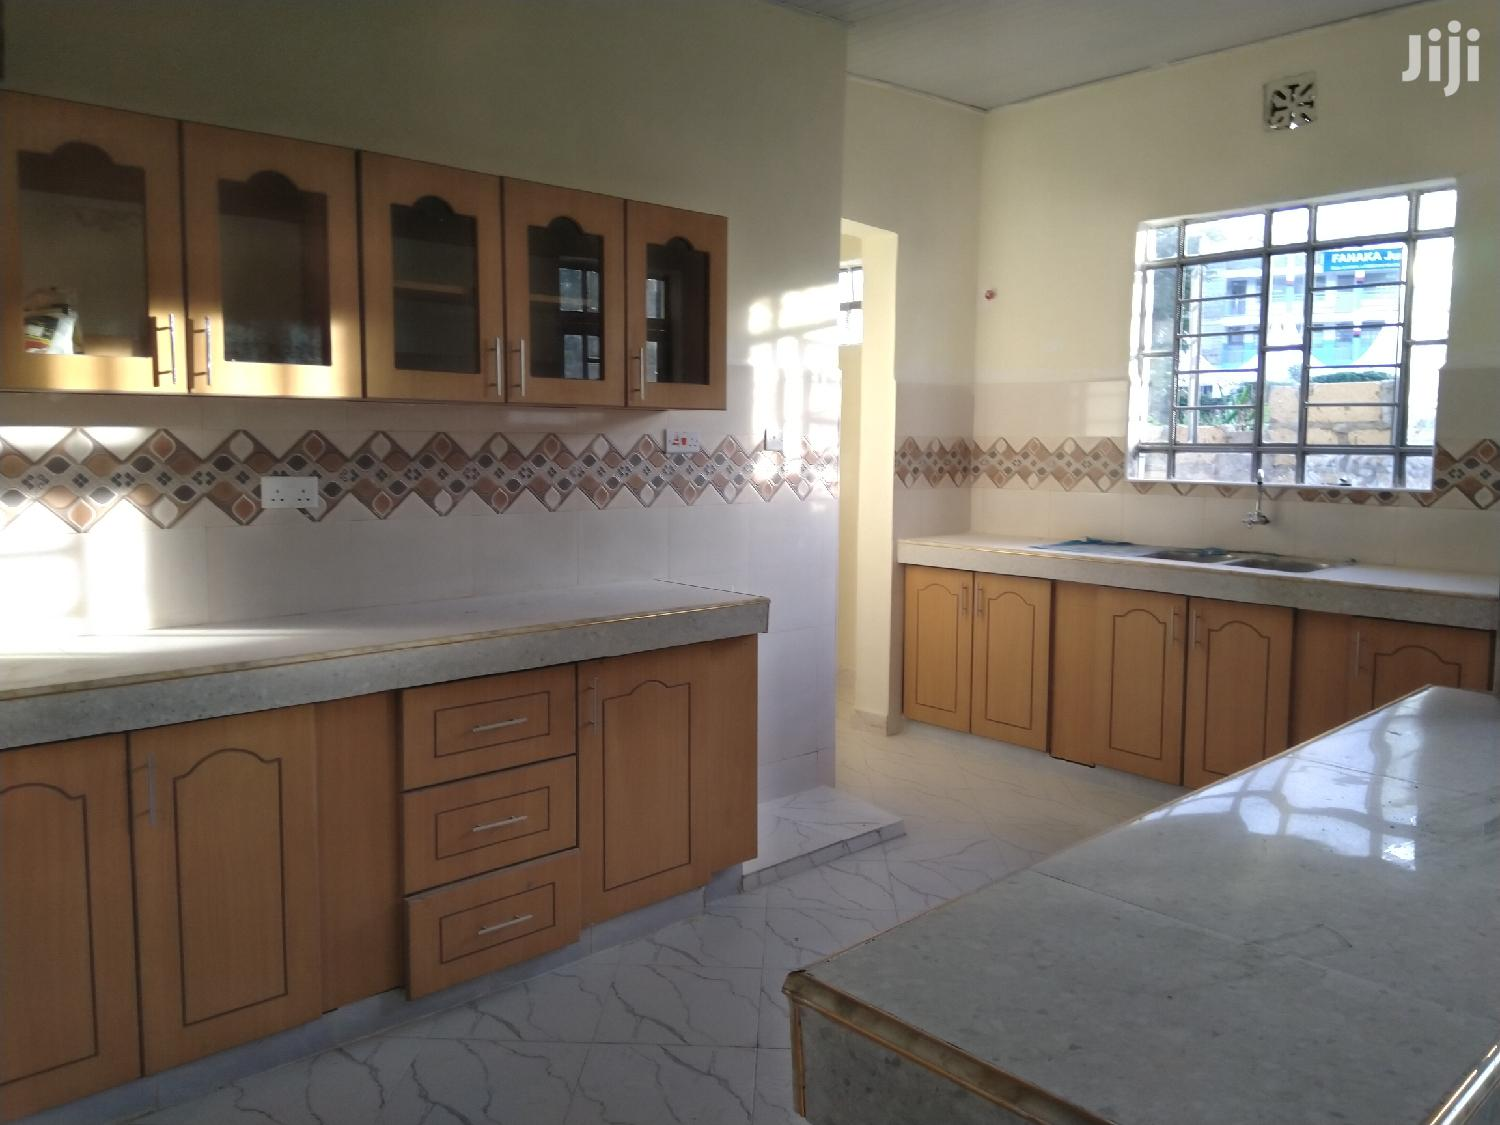 3 Bedroom Two Ensuite Bungalow In A Gated Community | Houses & Apartments For Sale for sale in Karen, Nairobi, Kenya